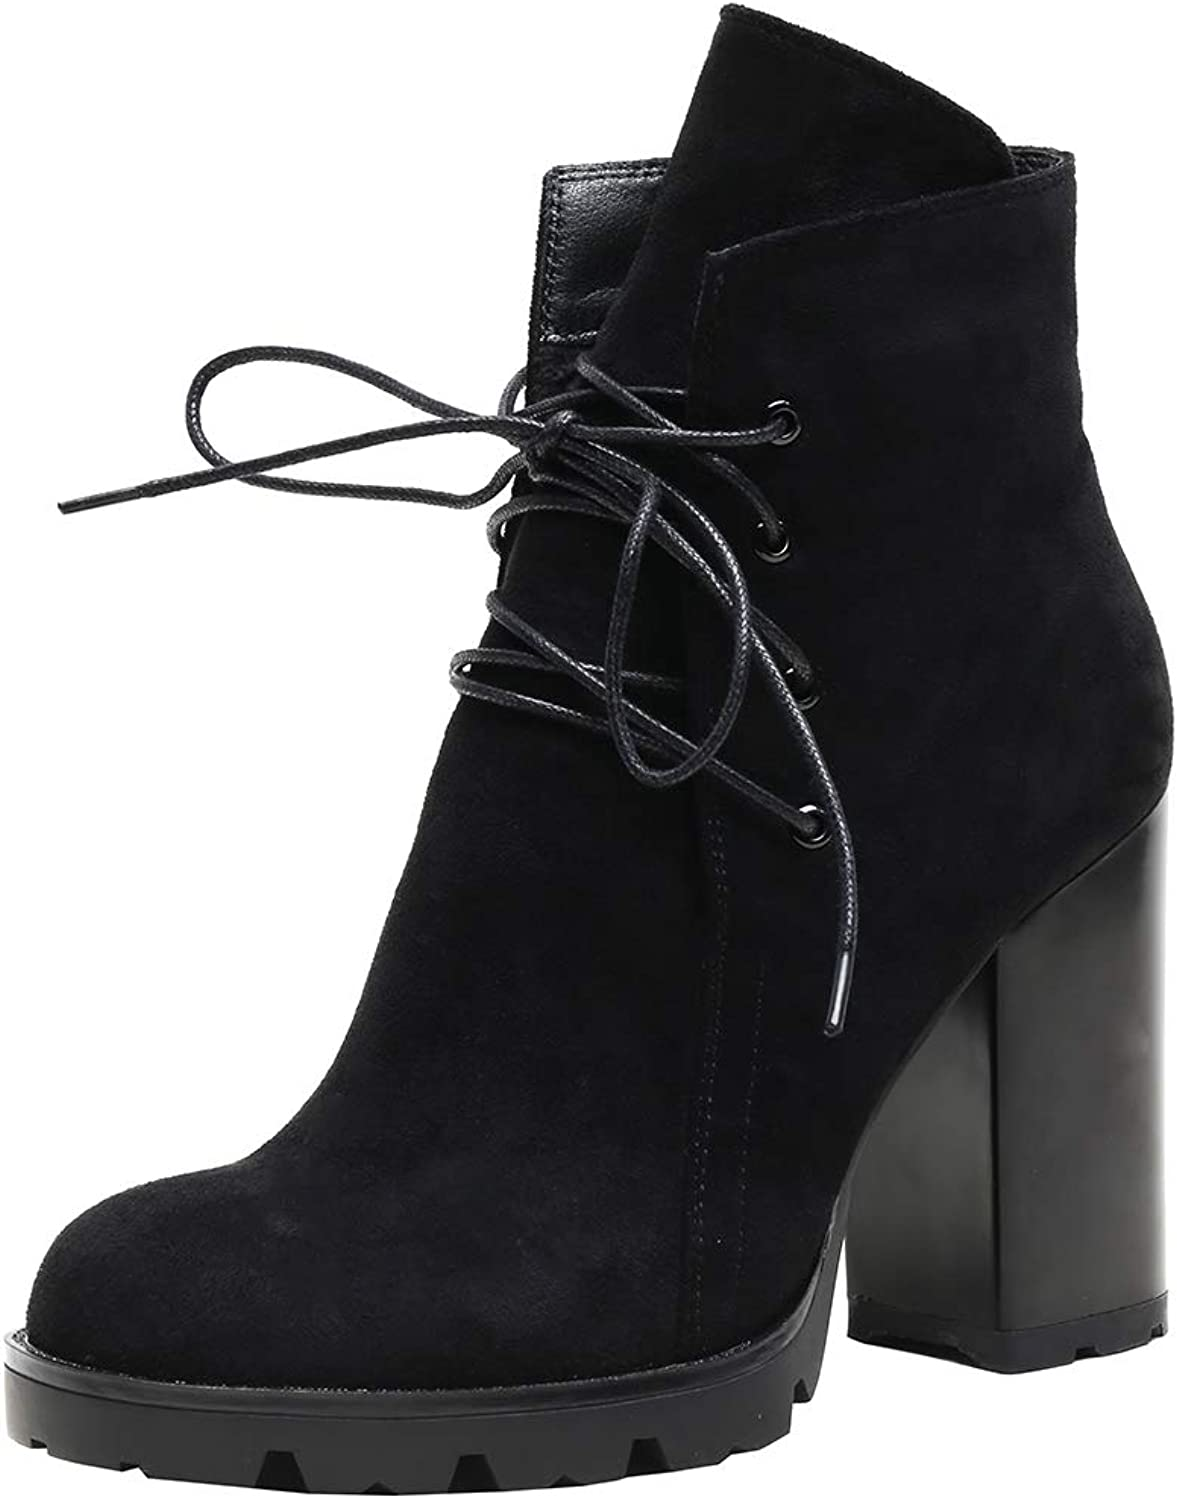 Sofree Women's Mid Calf Stretch high Heel Ankle Boots